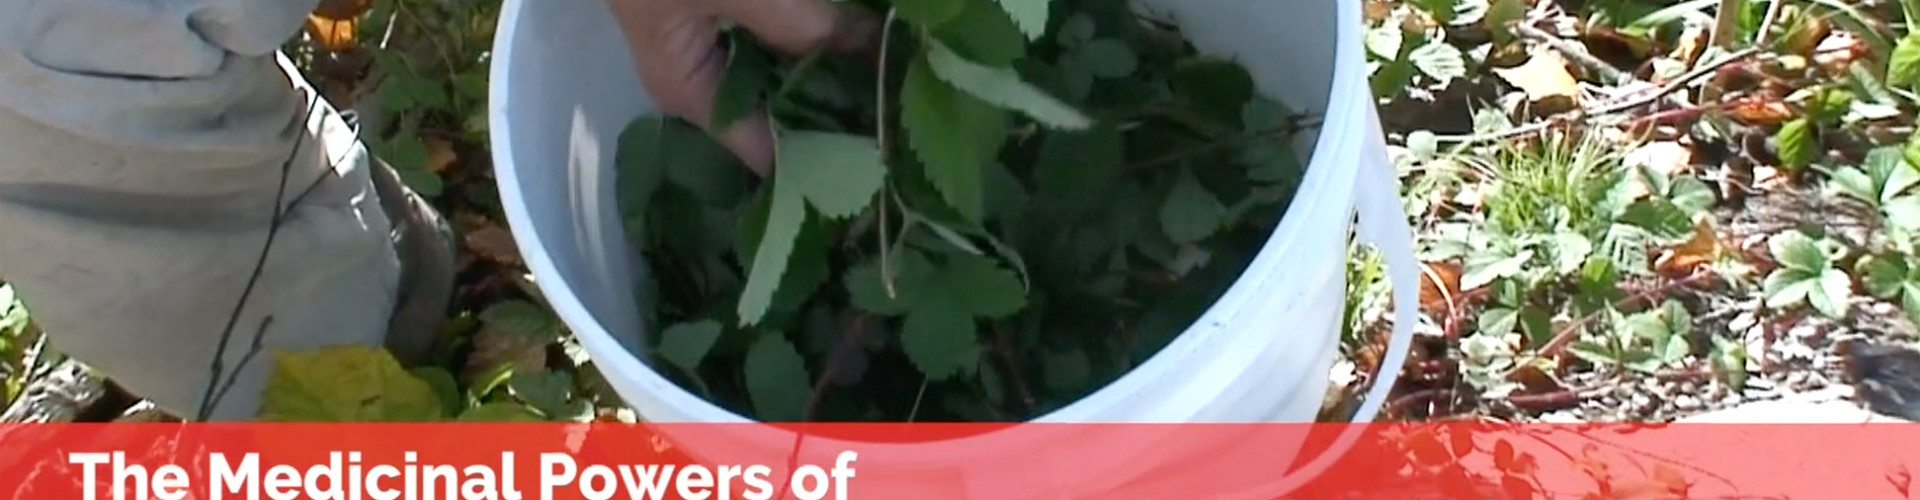 The Medicinal Powers of Wild Strawberry Leaves